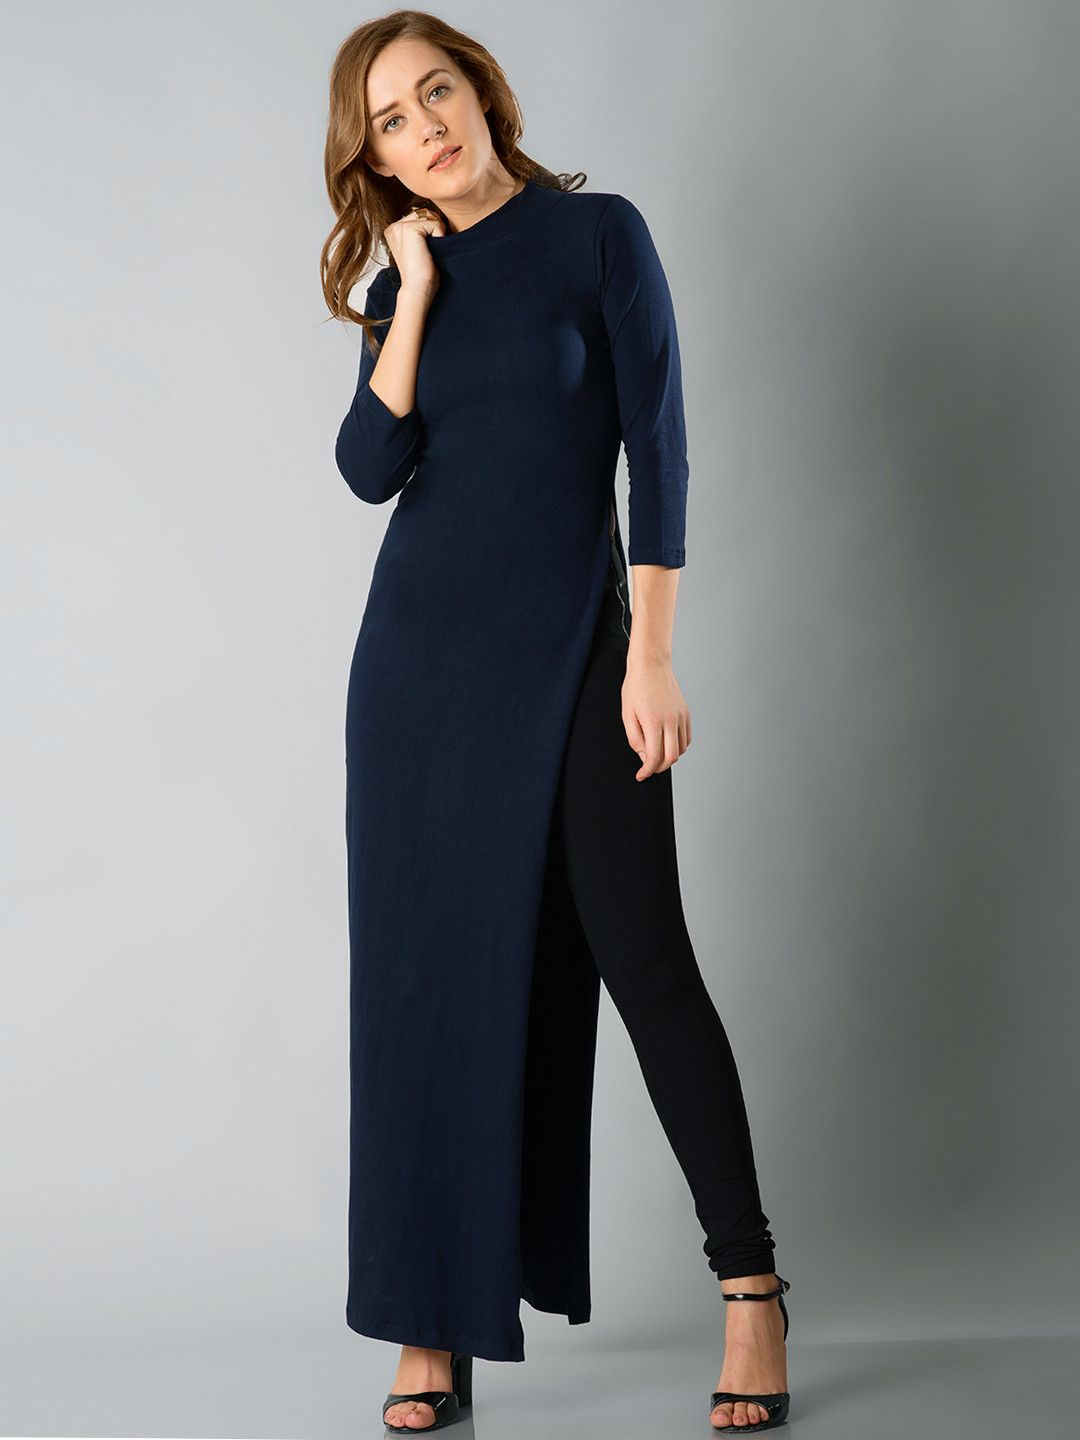 ad978825e336 FabAlley Women Navy Solid Longline Top  tunic  slit  solid  formal ...